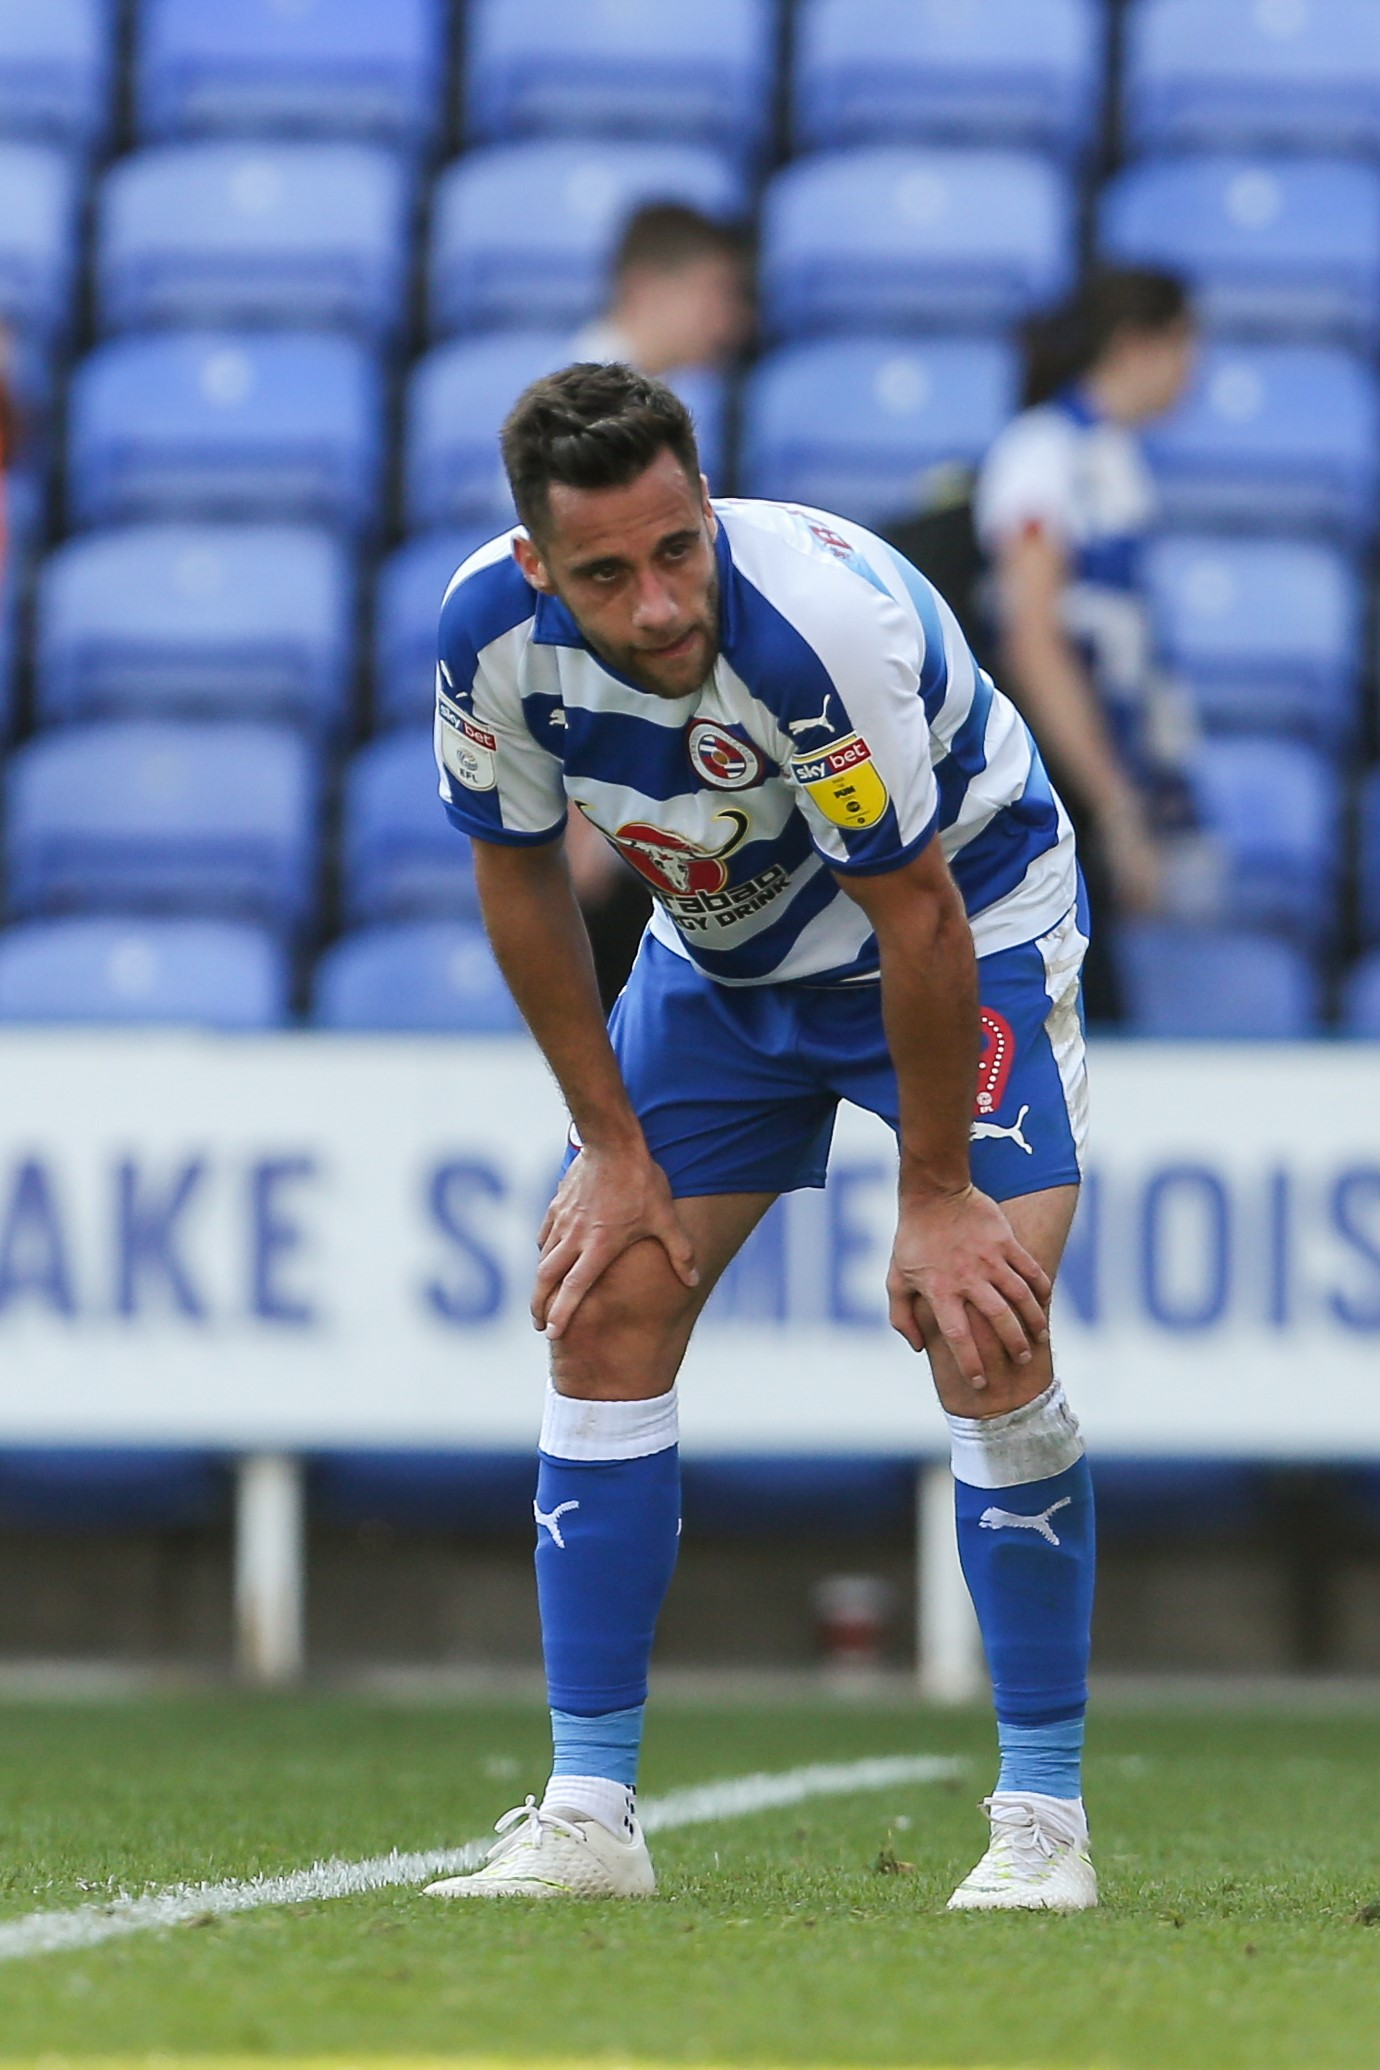 Sam Baldock notched his fifth goal of the season, but Reading had to settle for a point.